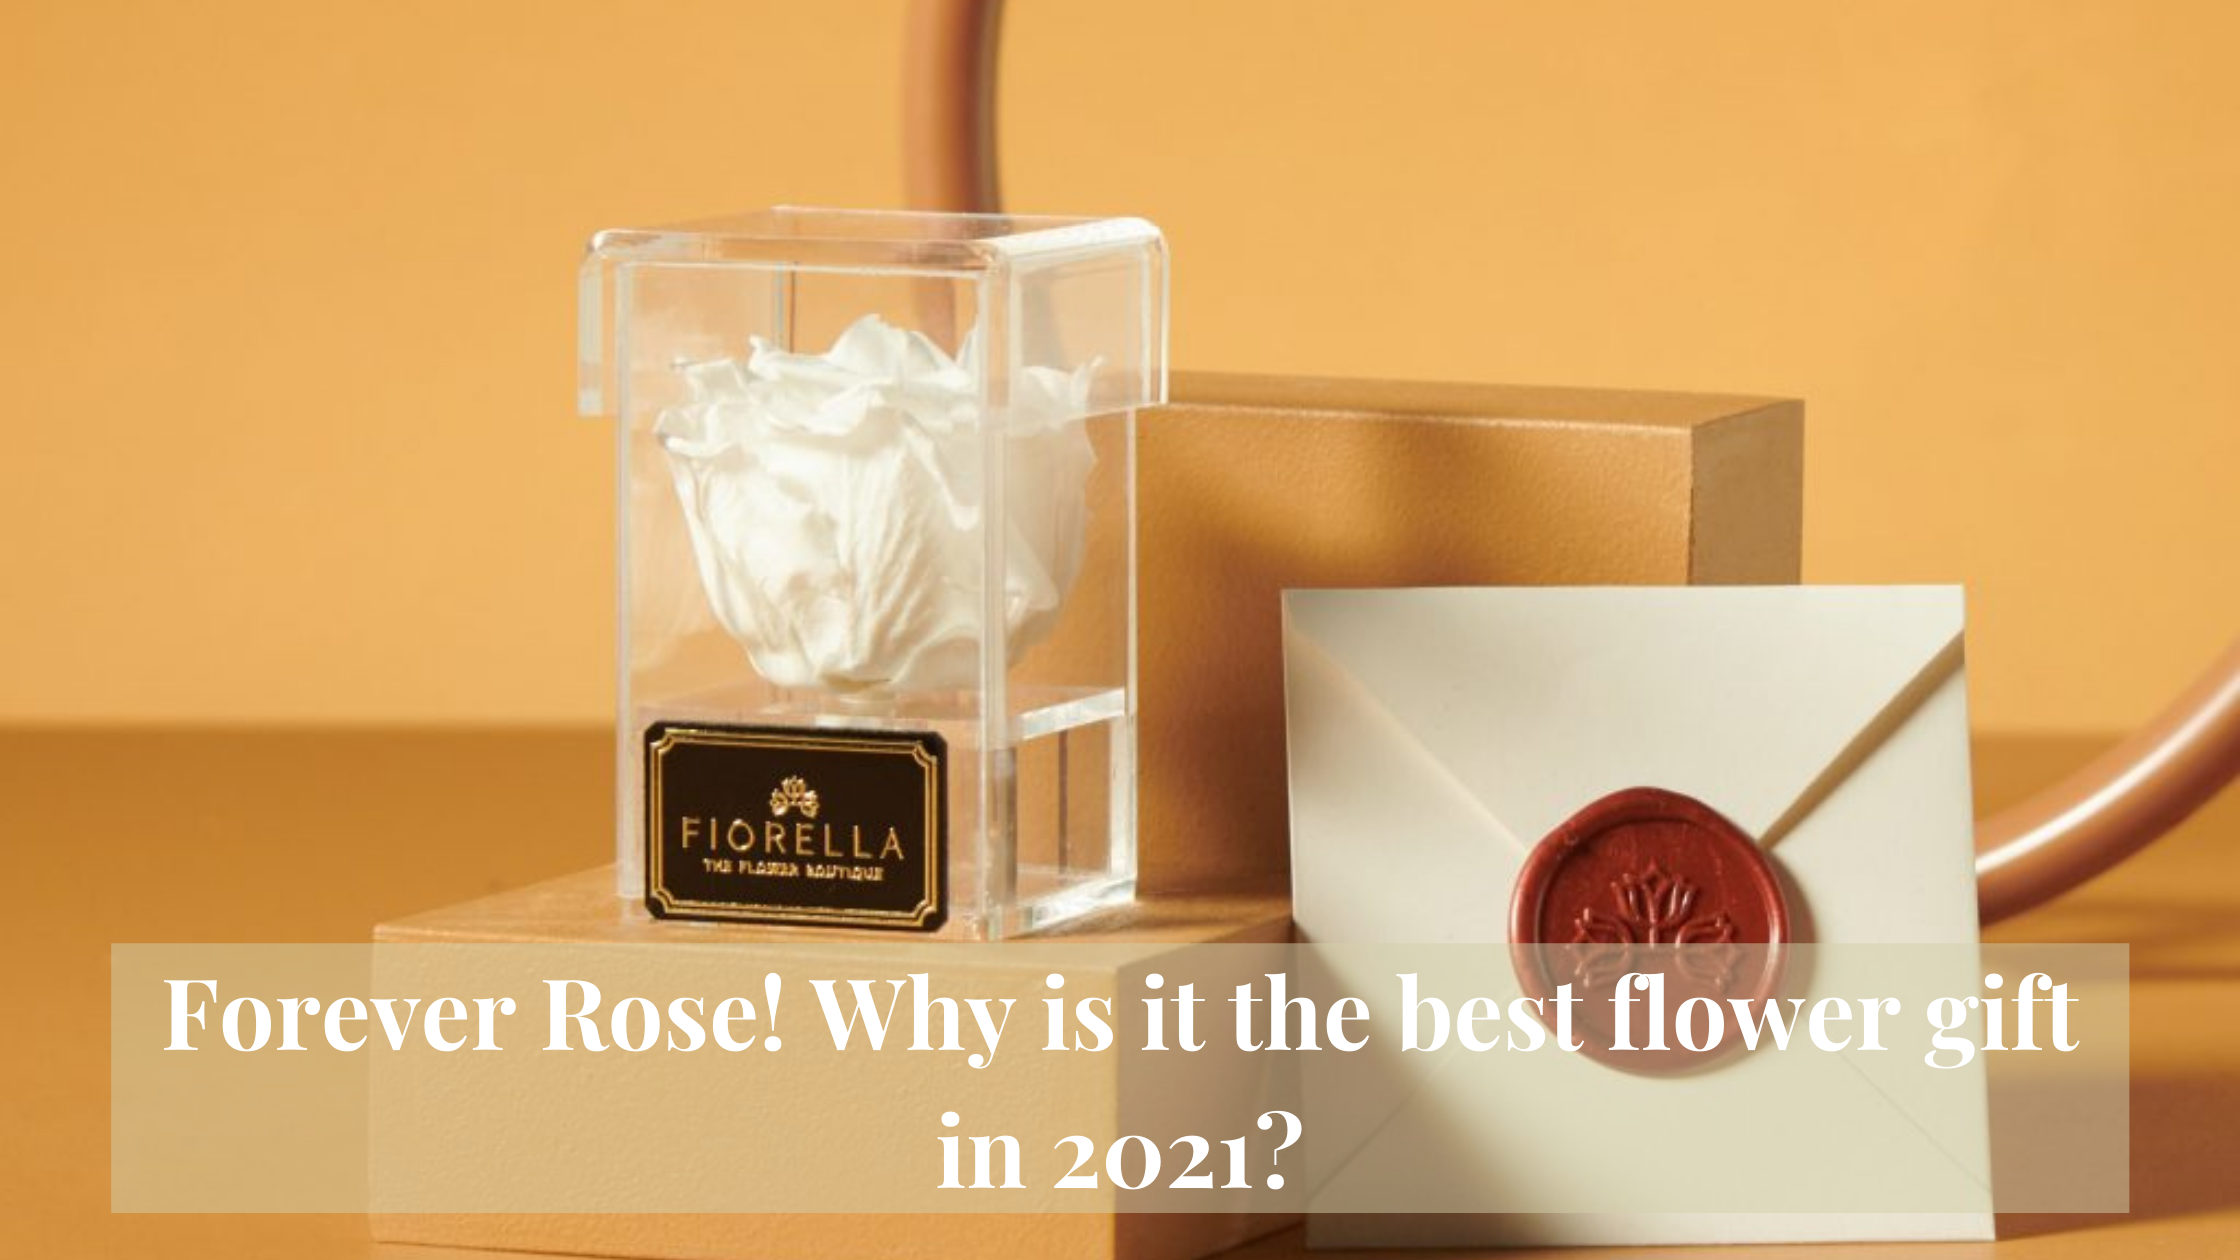 Forever Rose! Why is it the best flower gift in 2021?